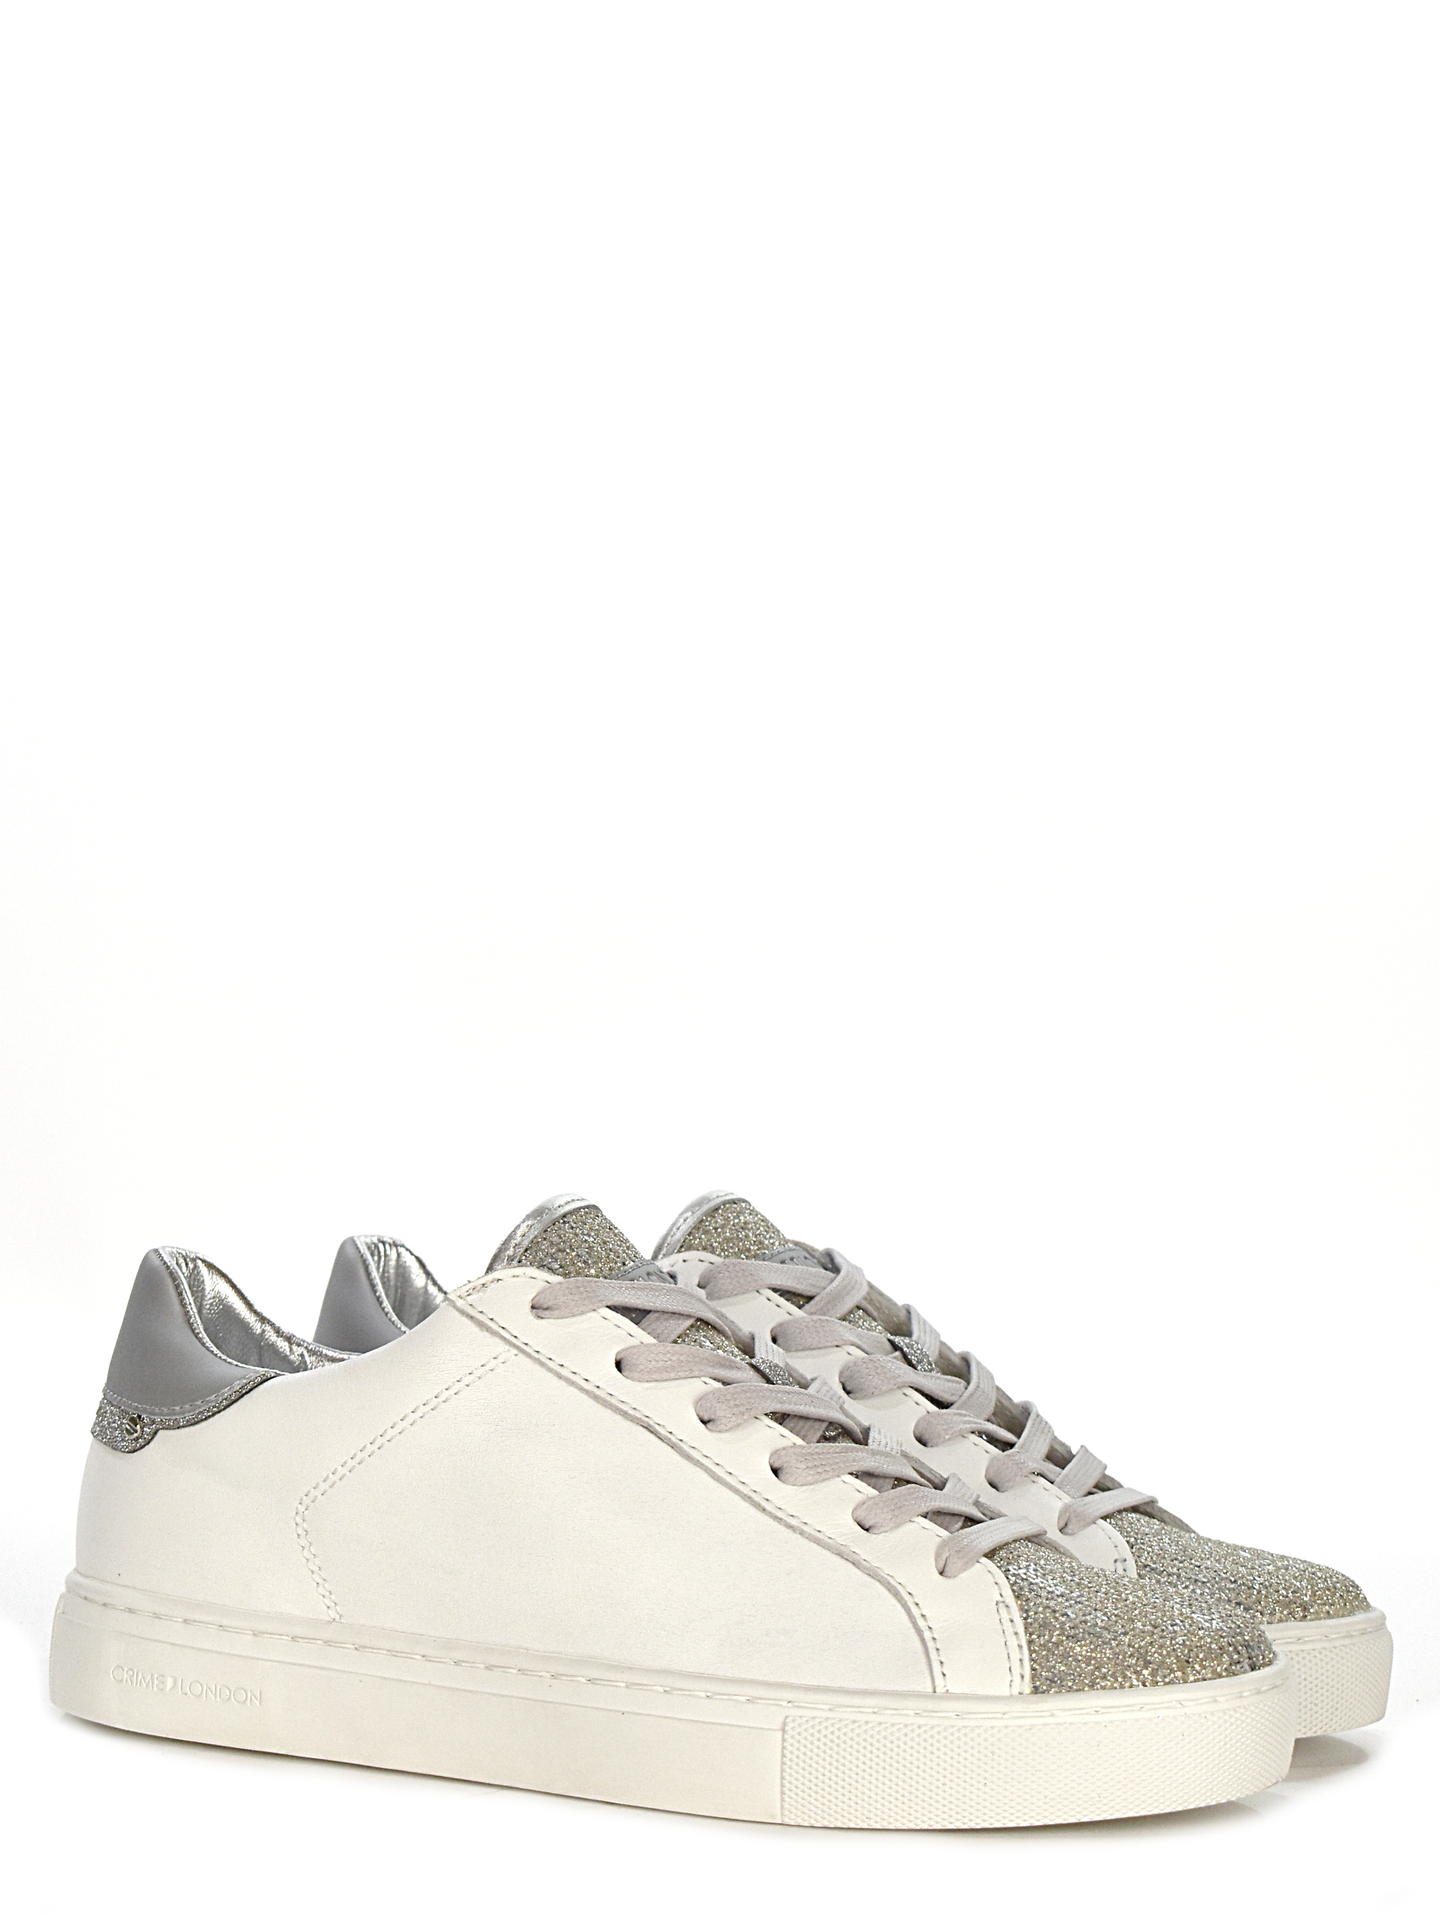 SNEAKERS CRIME LONDON 25160 BIANCO 416cbf495d1